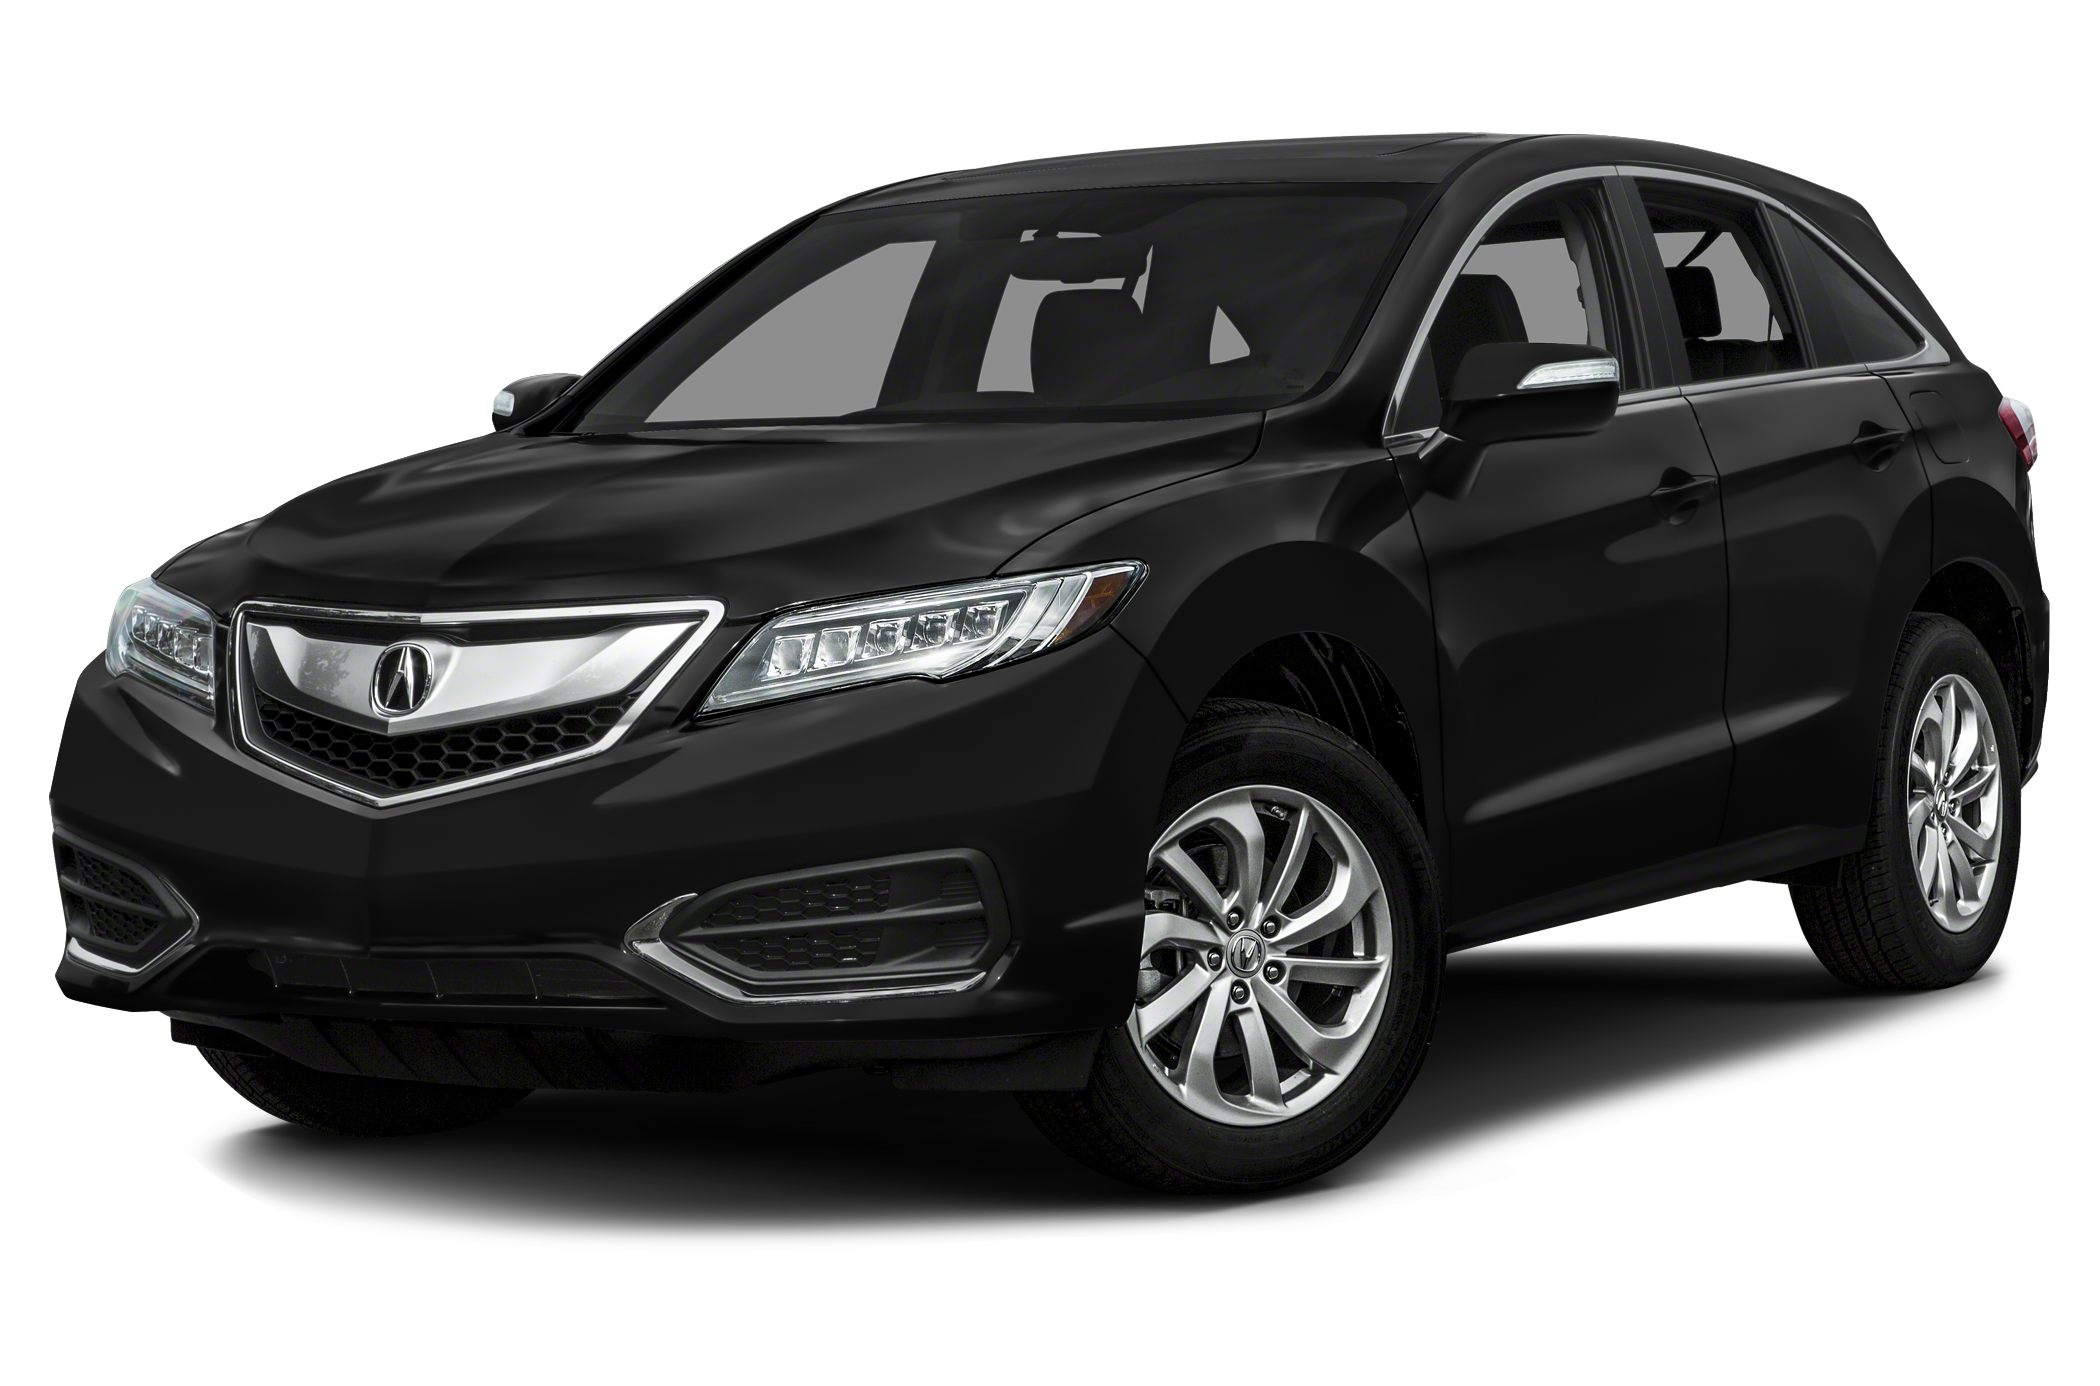 ... 2015 acura rdx tech review 2007 acura rdx motor read more 2010